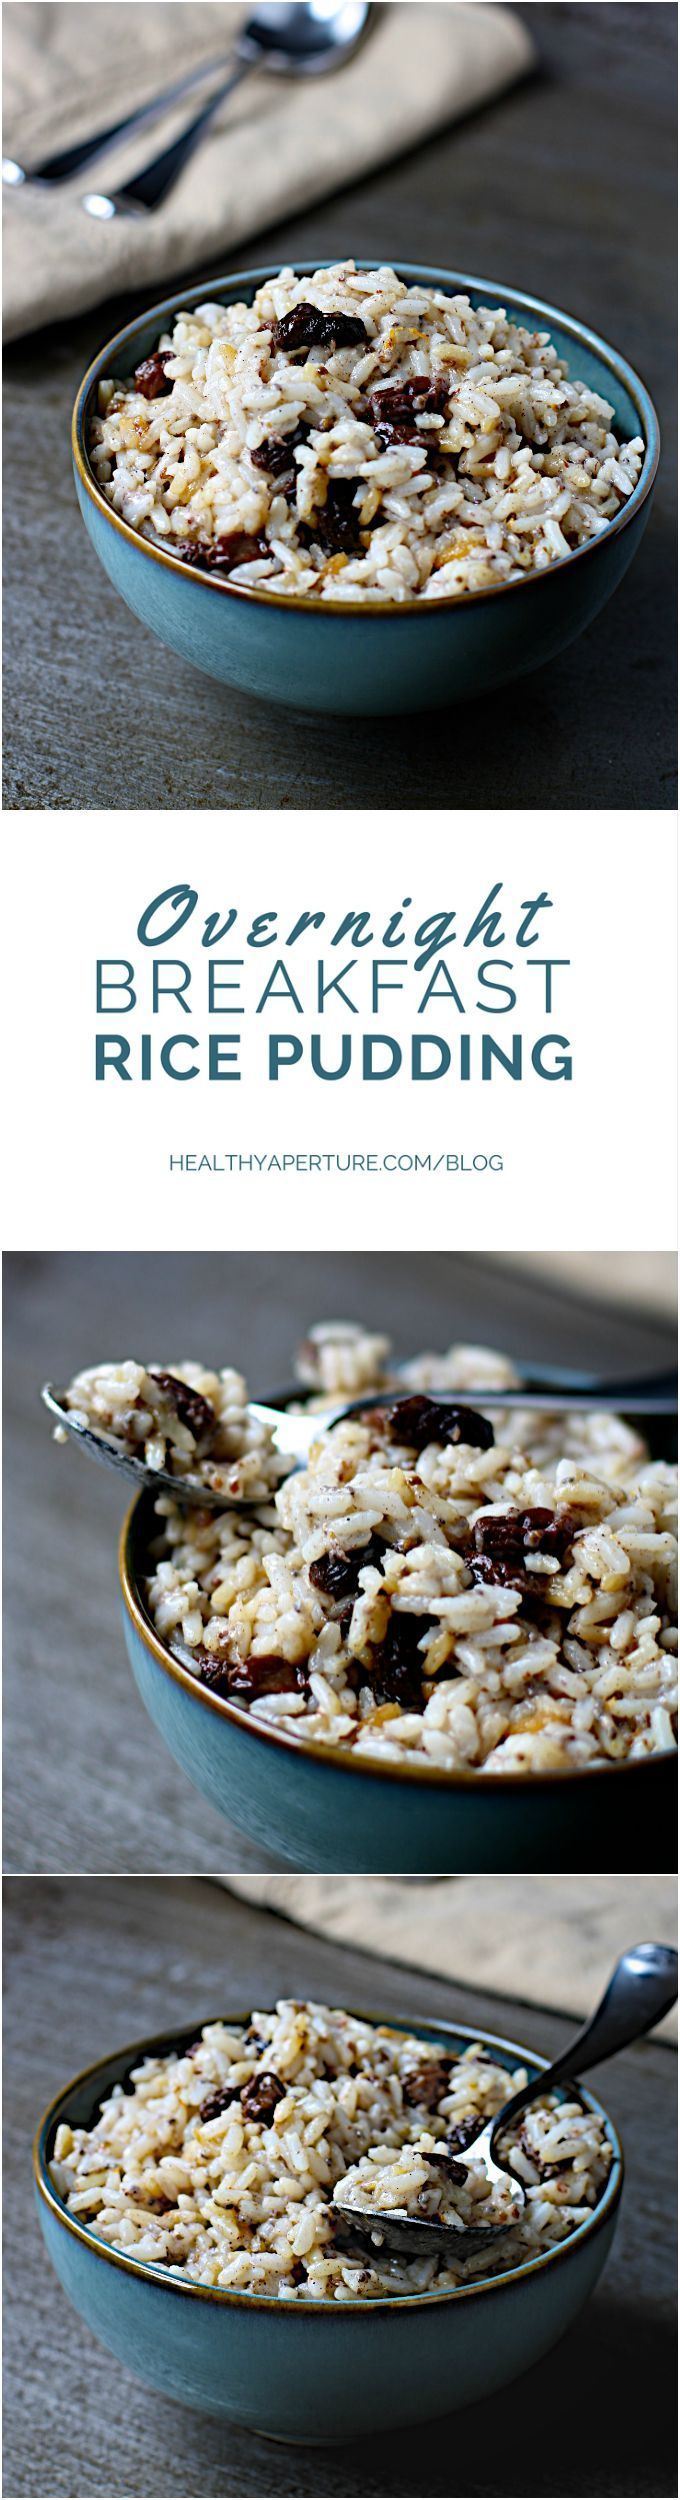 A healthy twist on rice pudding, this dish combines cooked white rice, flax and chia for a nourishing new breakfast option (+ recap of sponsored trip to see how rice is grown)